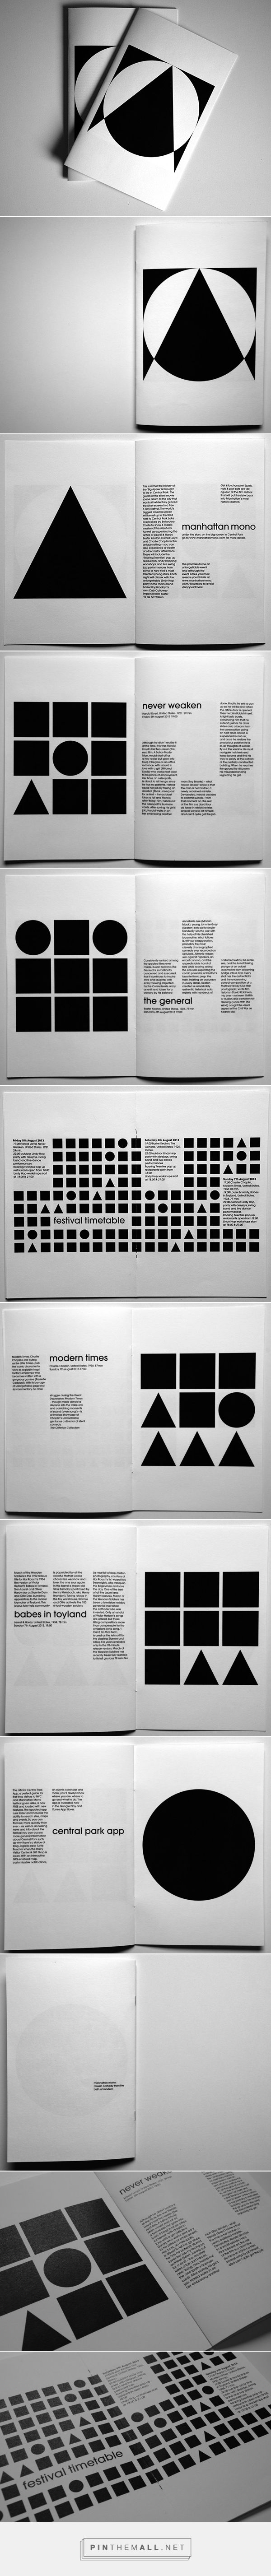 Booklet Manhattan Mono Film Festival by Elise Boevenbrink